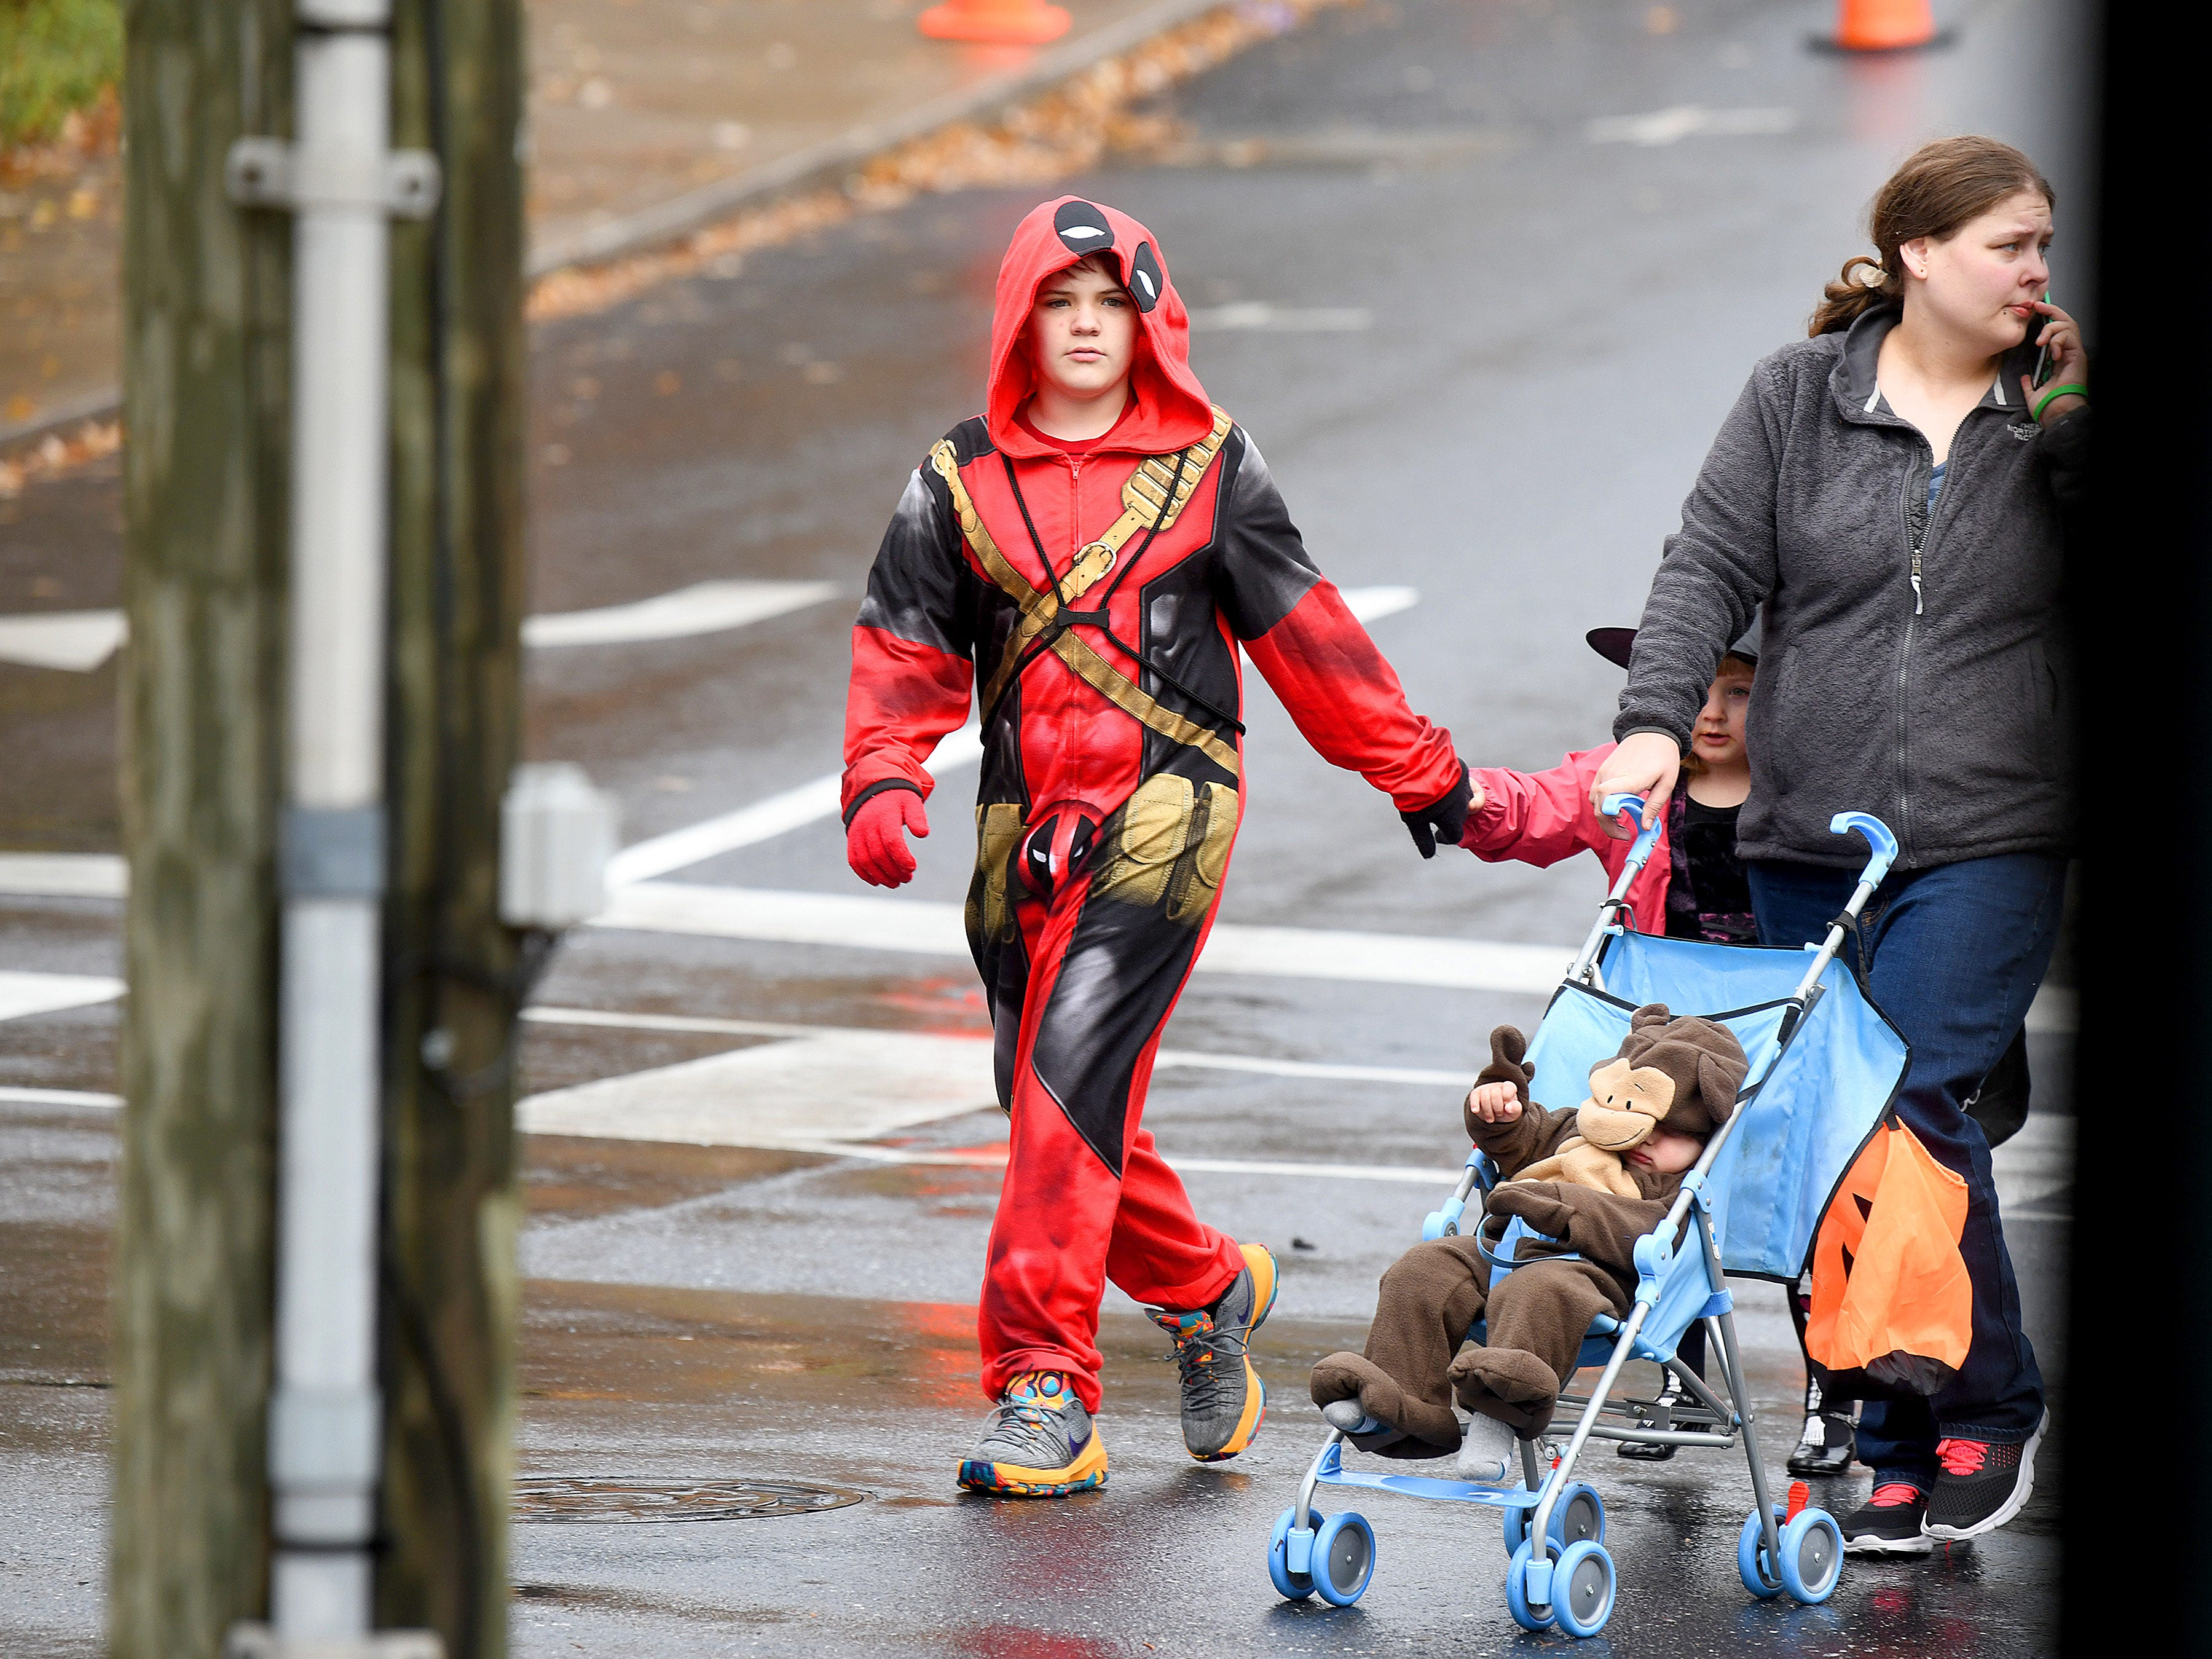 Deadpool helps a young witch cross the street next to a monkey in a stroller while trick-or-treating in downtown Staunton on Saturday, Oct. 27, 2018.